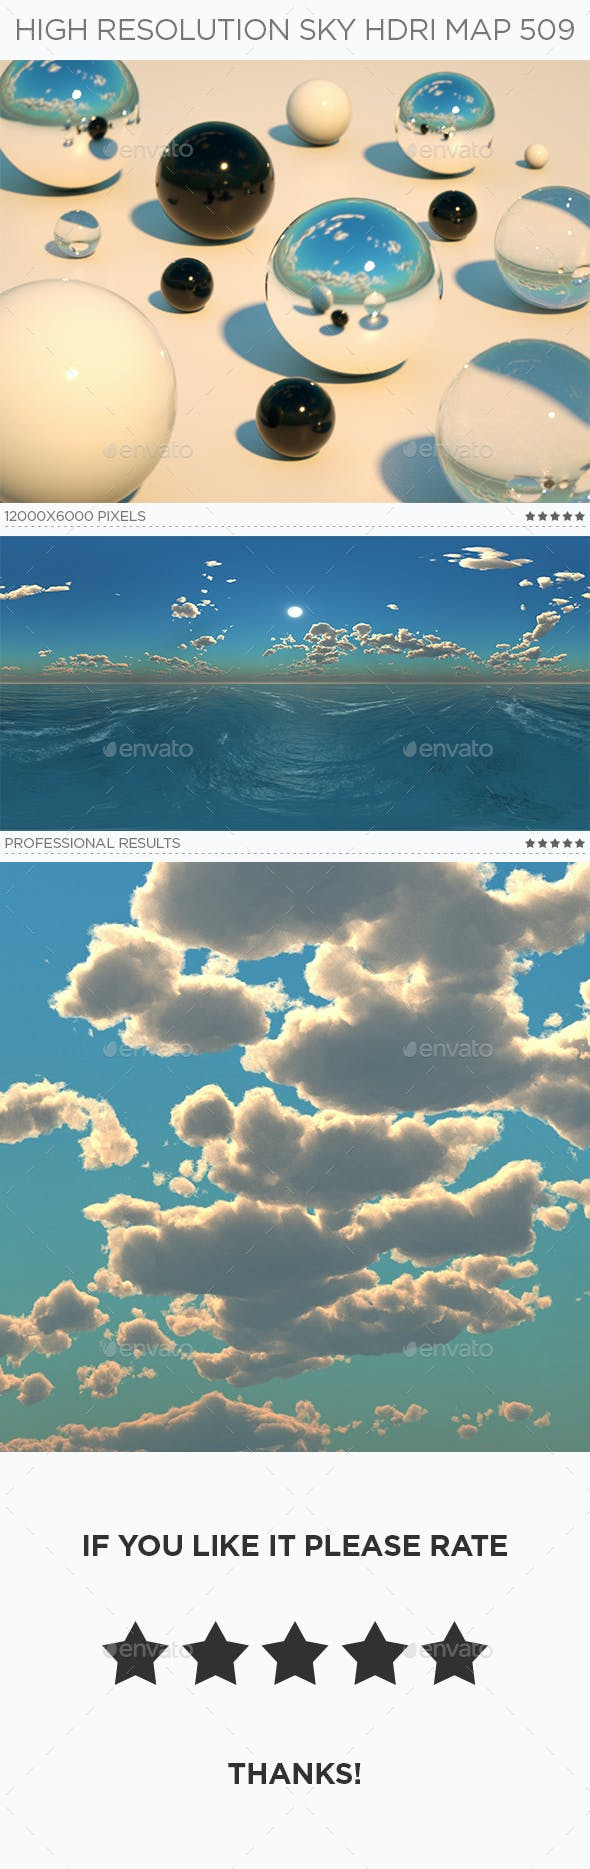 High Resolution Sky HDRi Map 509 - 3DOcean Item for Sale